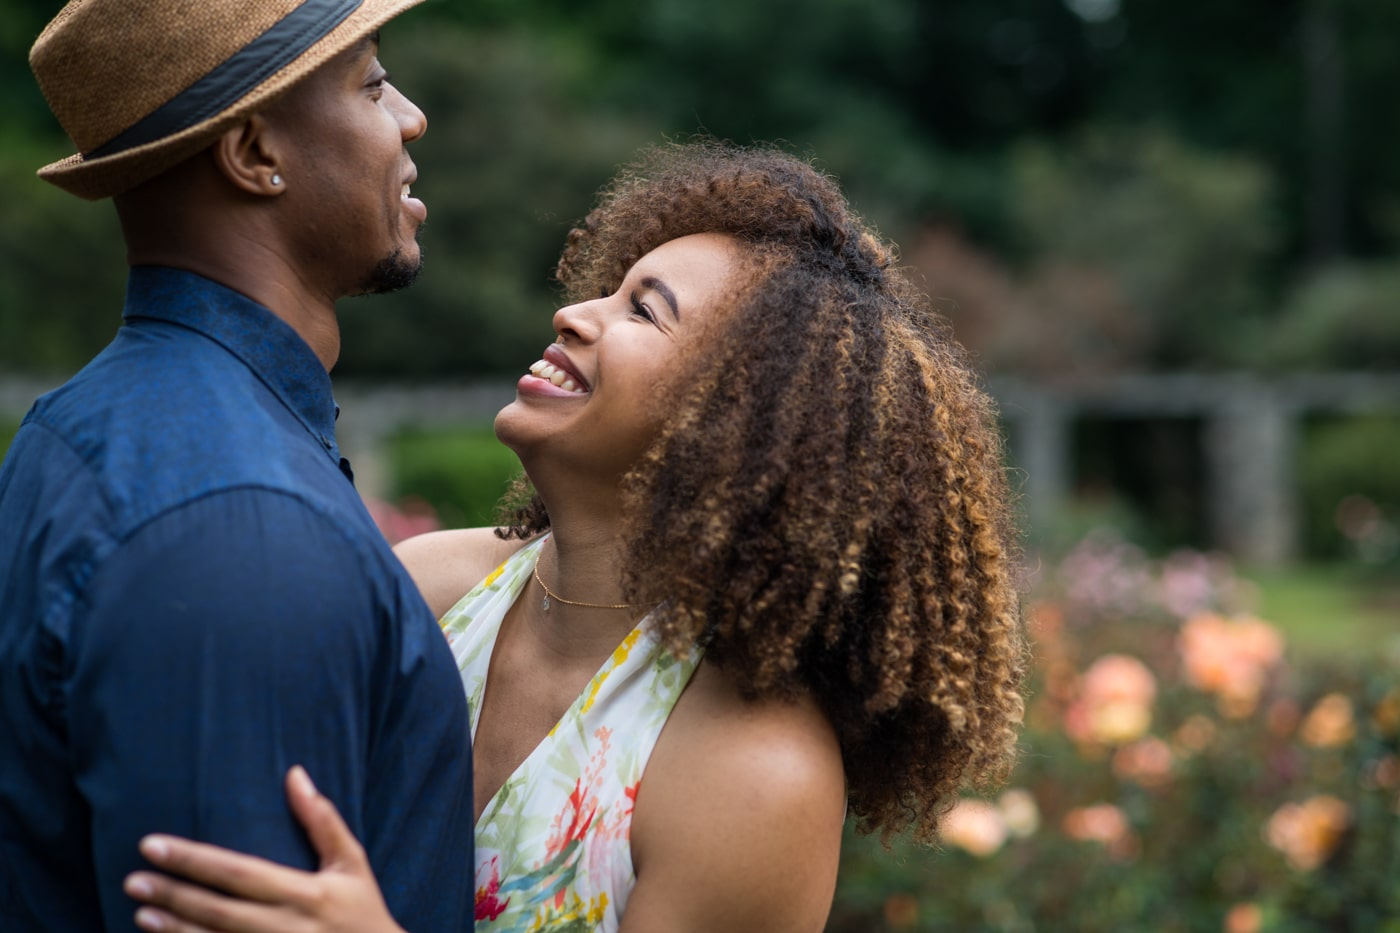 woman laughs at partner in field of roses